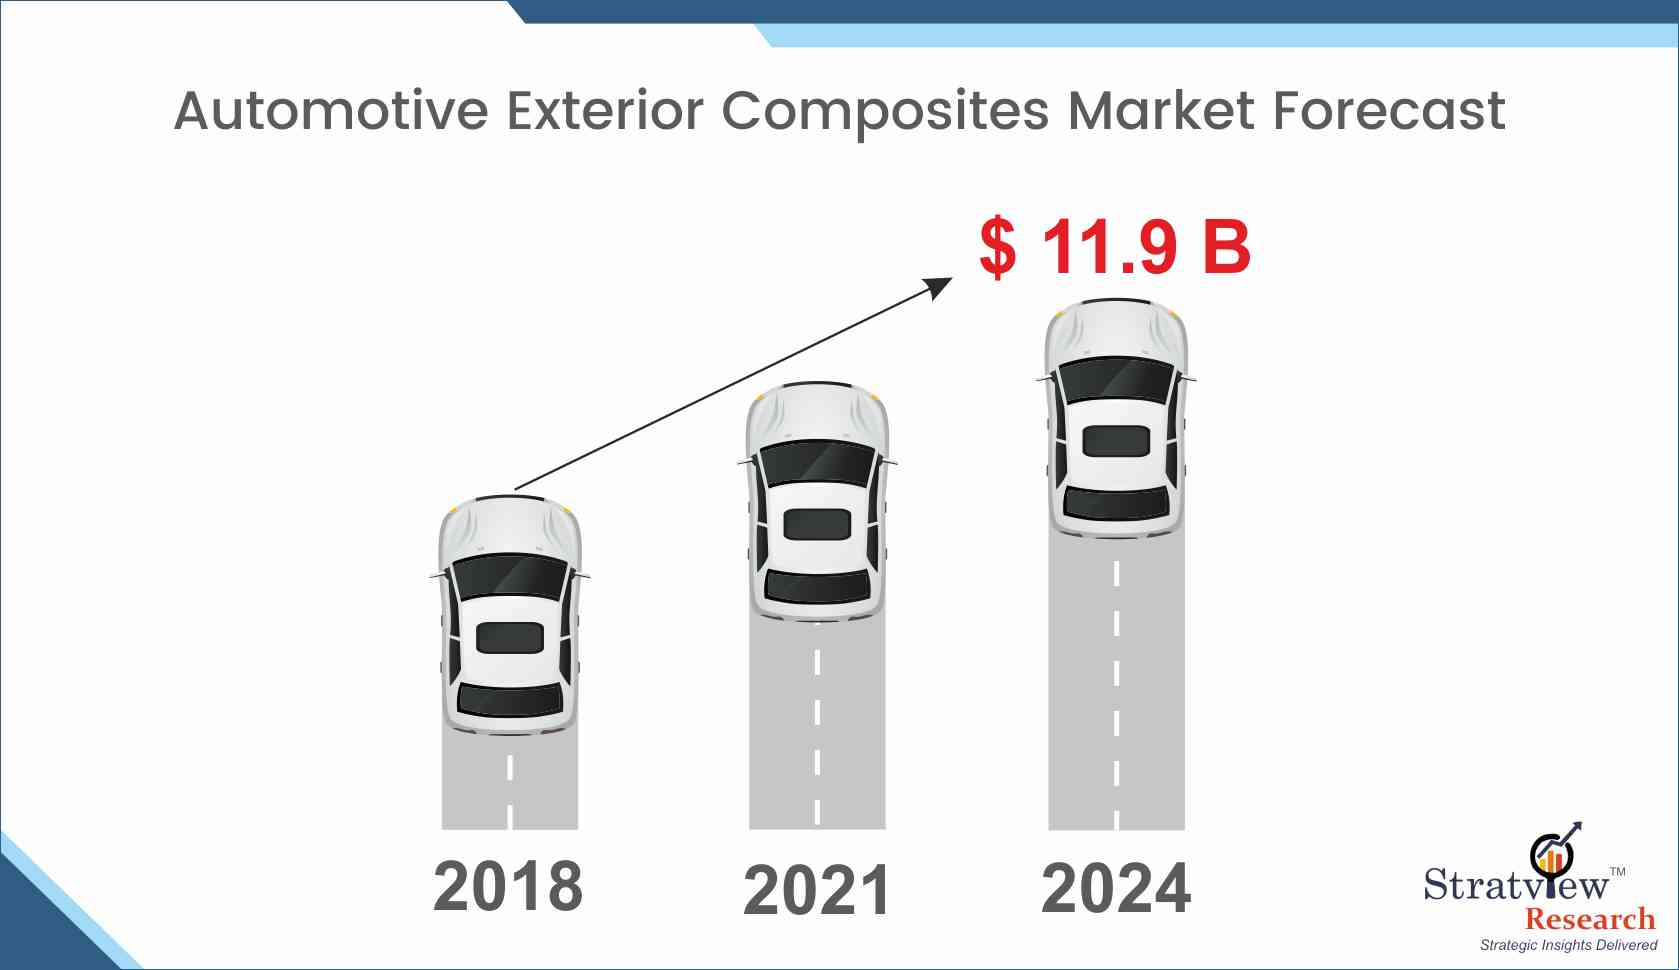 High Growth and Smooth Sailing of Automotive Exterior Composites Market